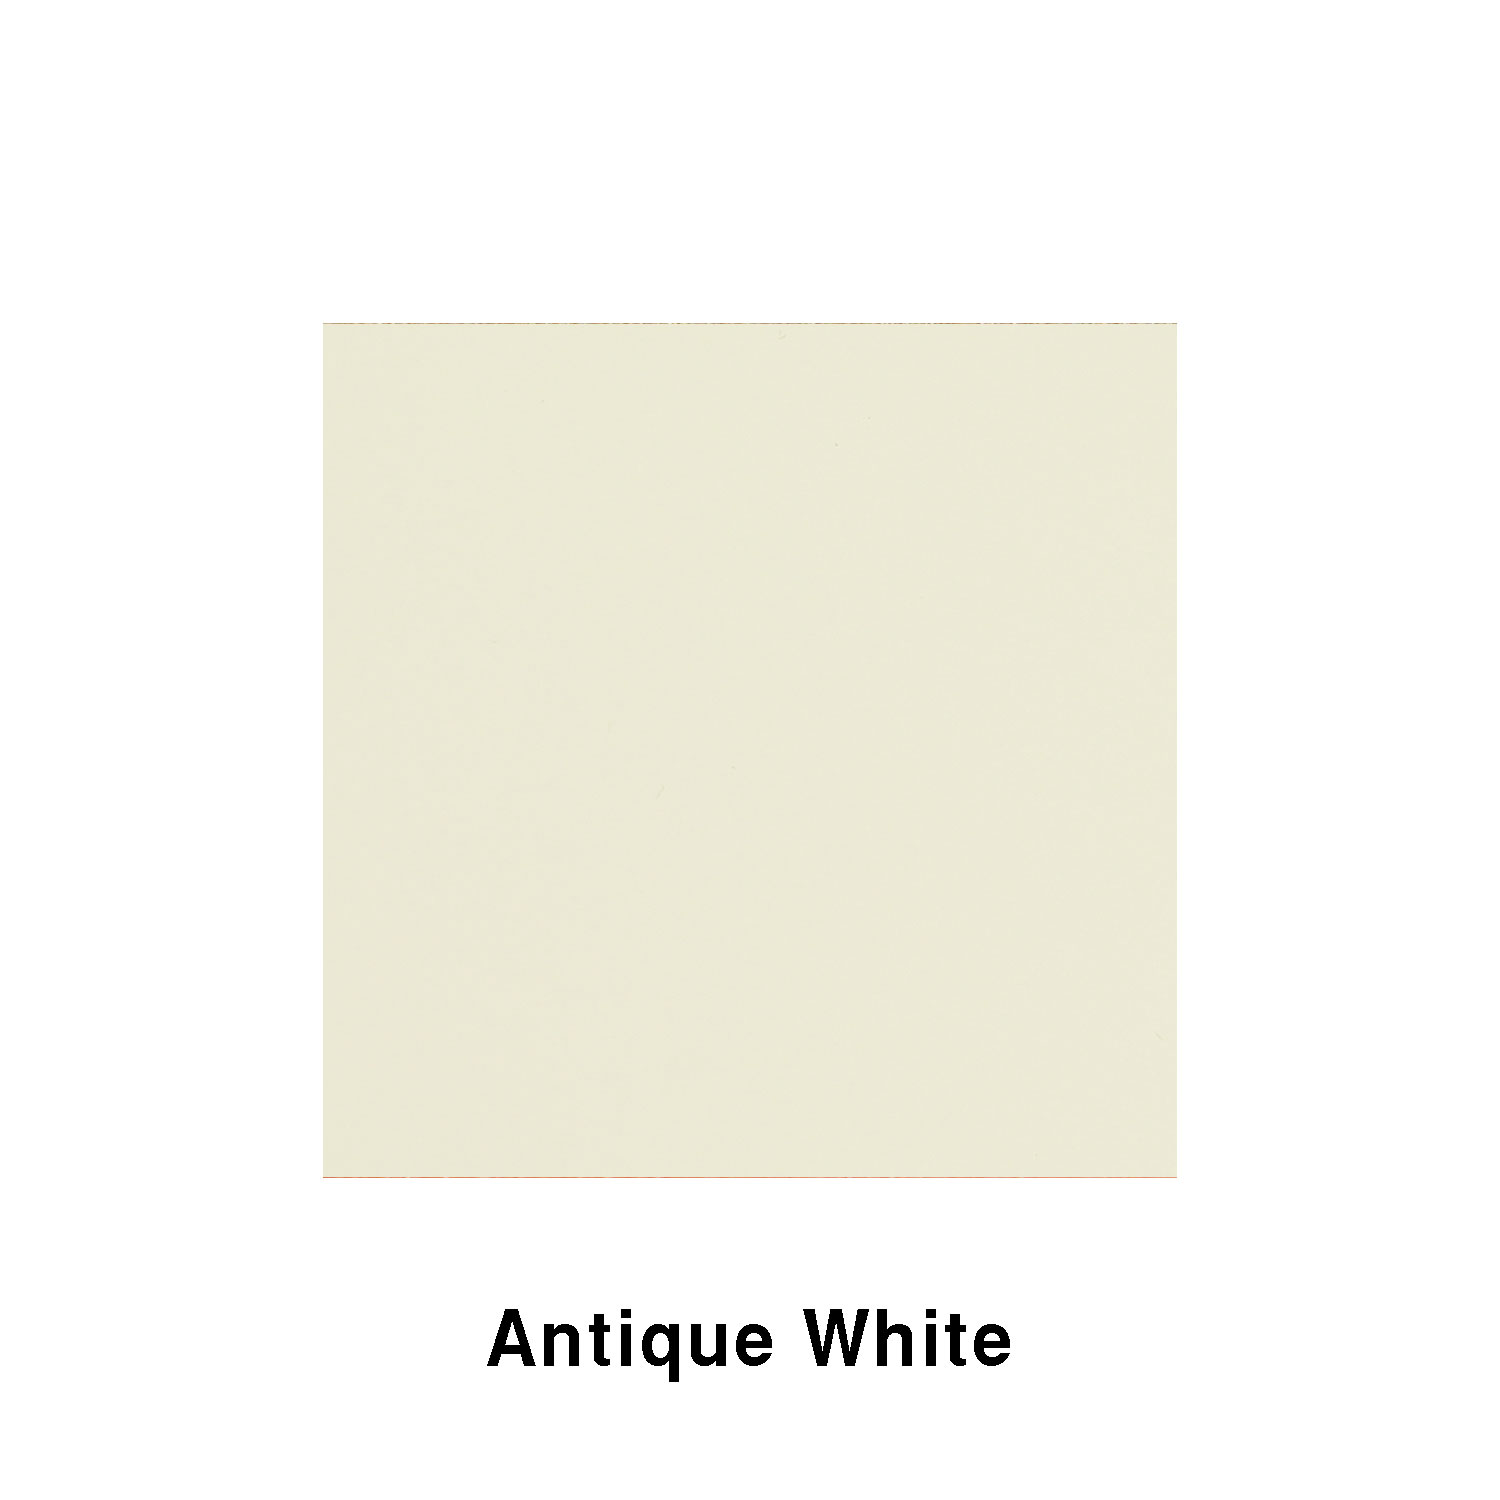 Antique White Fiberglass Finish